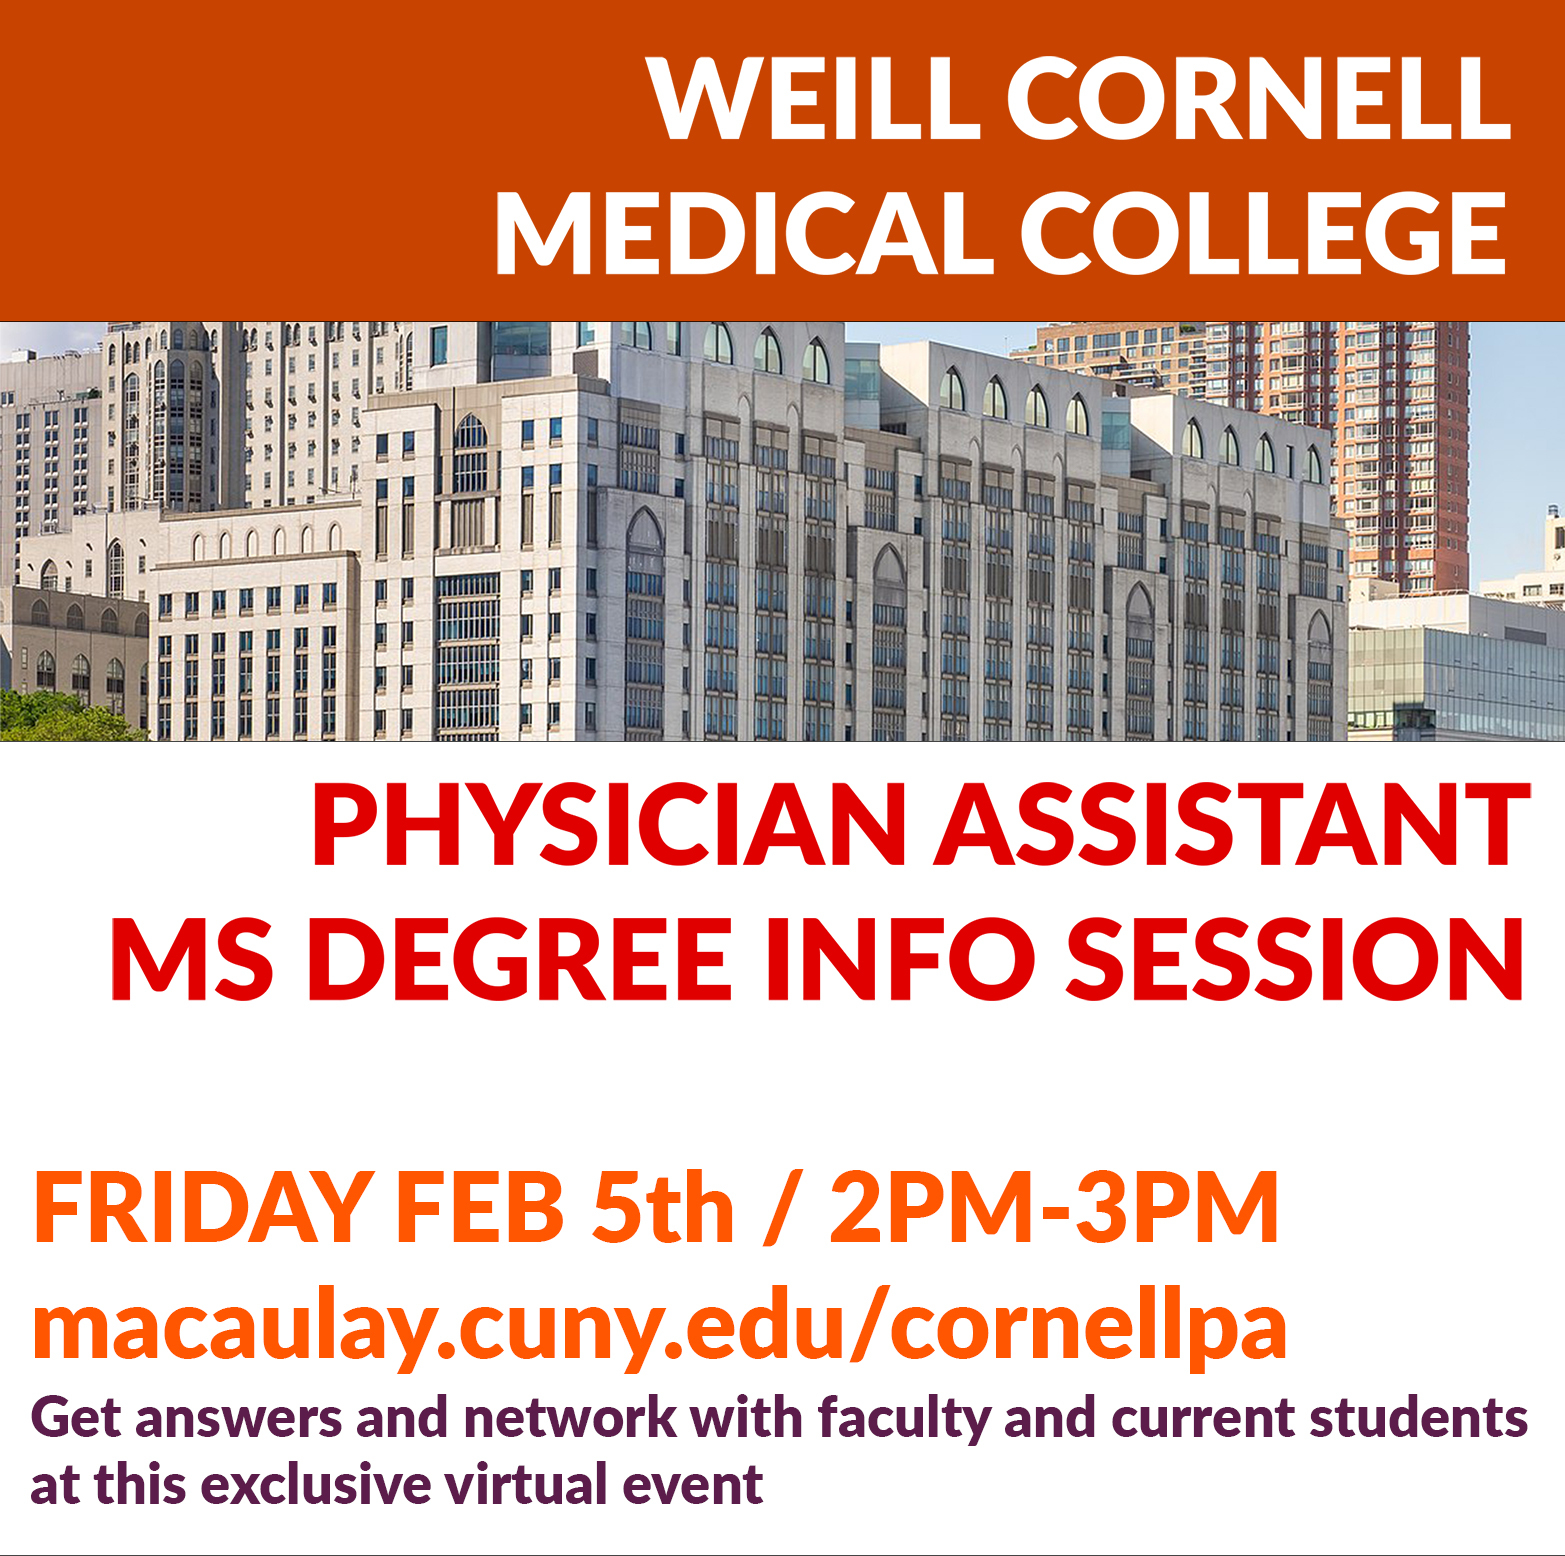 Join us for a Pre-health info session on Friday, February 5, 2021 at  2-3 pm with Weill Cornell's Physician Assistant Master's program